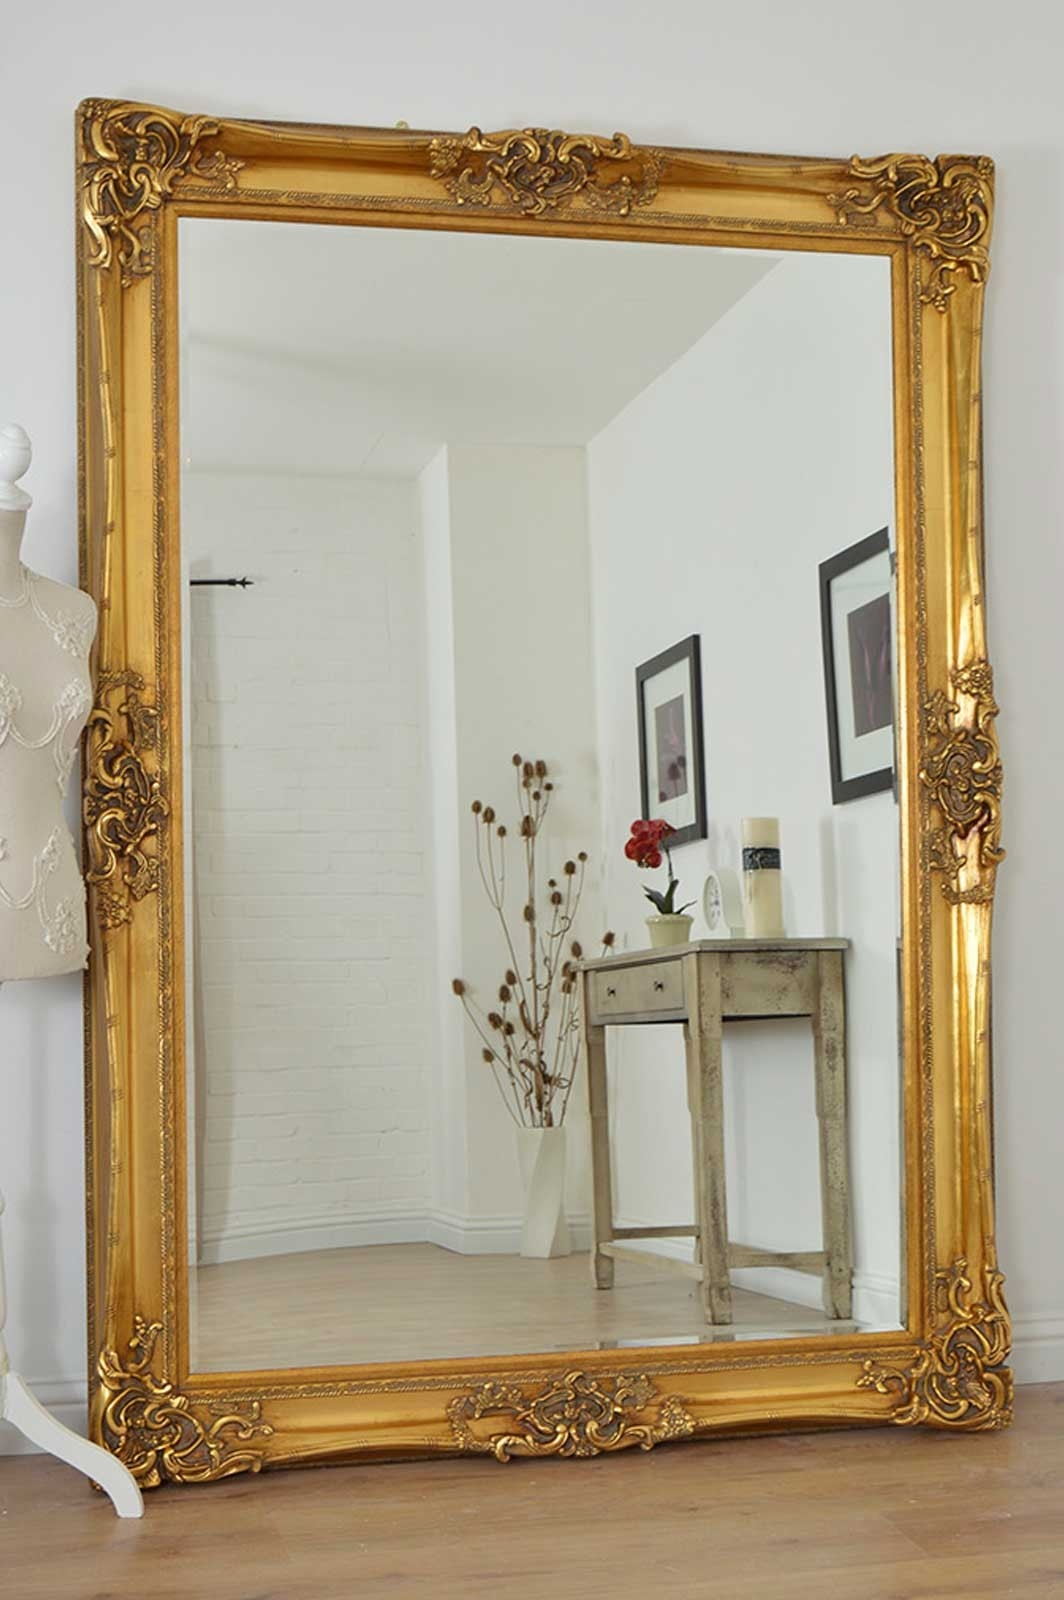 Large Gold Very Ornate Antique Design Wall Mirror 7ft X 5ft 213cm Within Antique Ornate Mirror (Image 8 of 15)